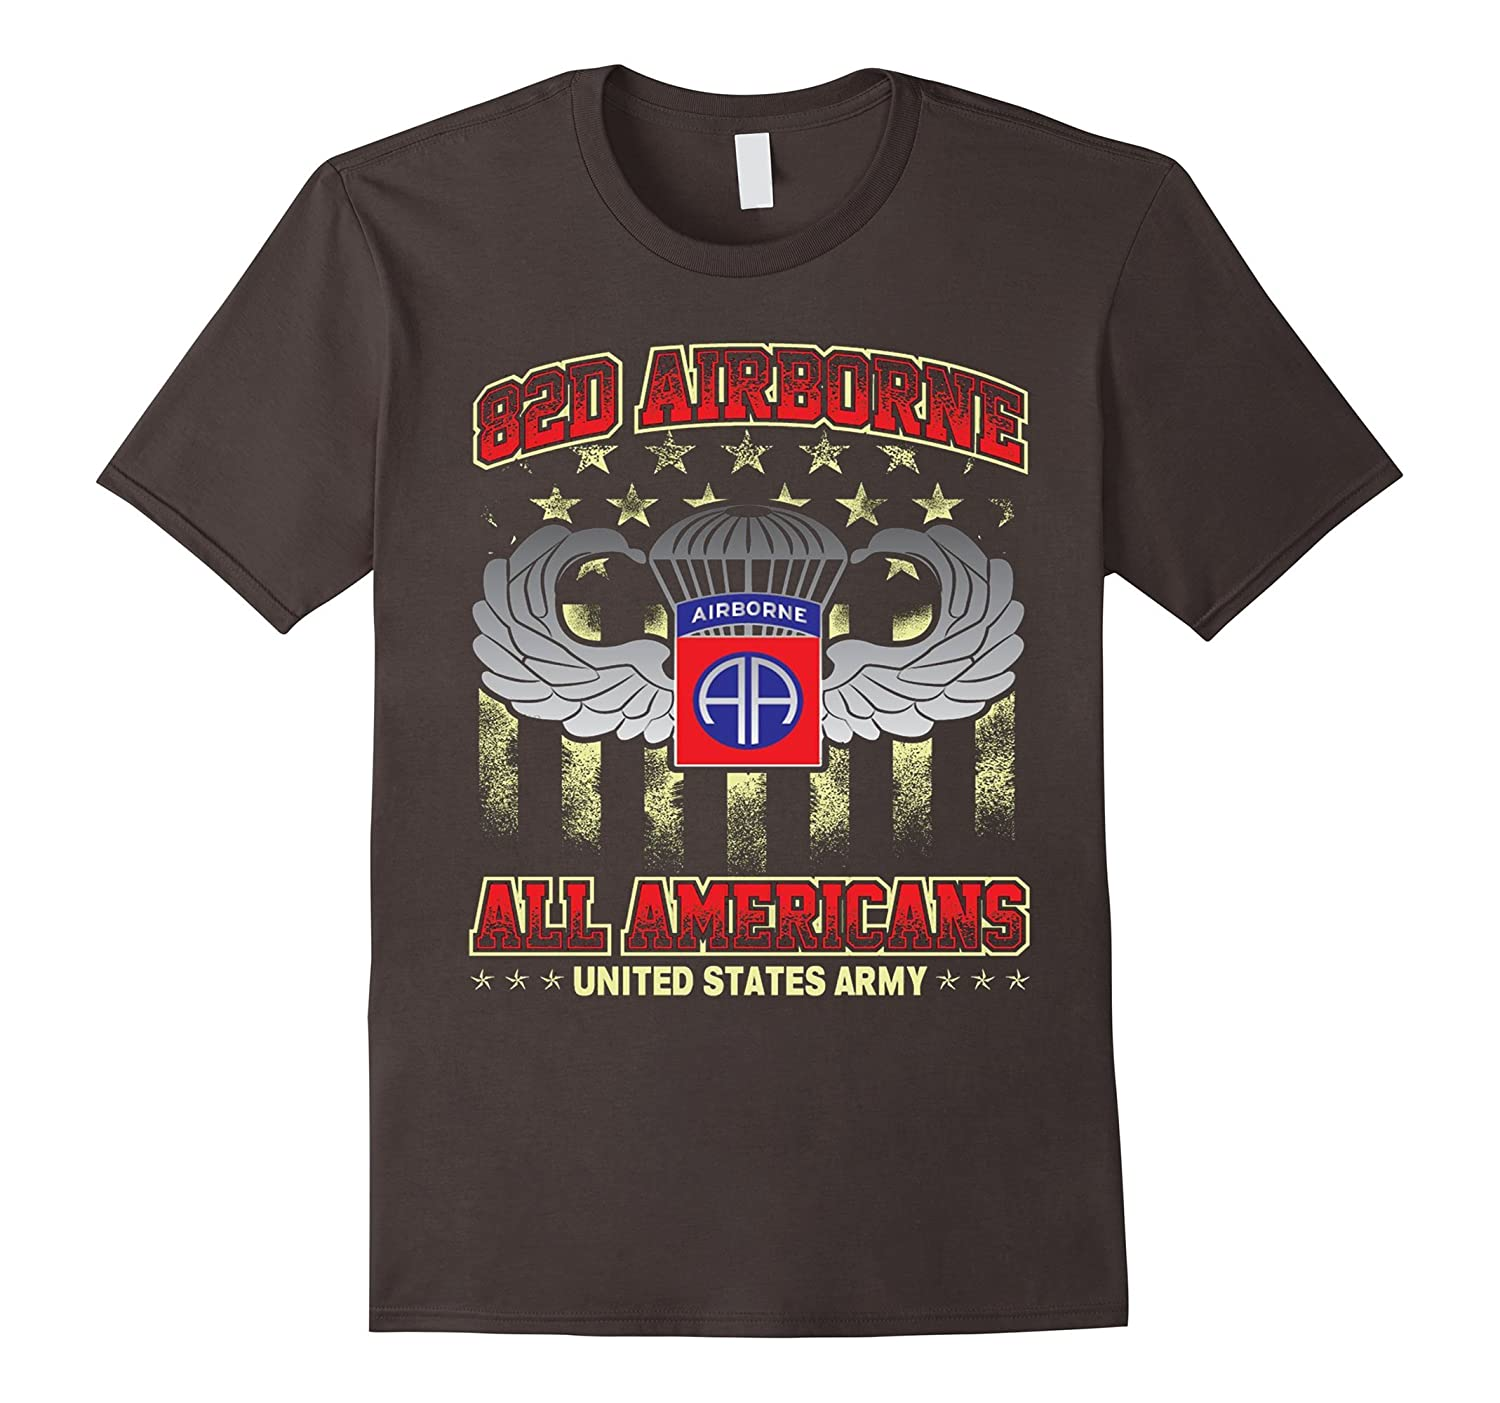 82nd Airborne Division – All Americans US Army Tshirt